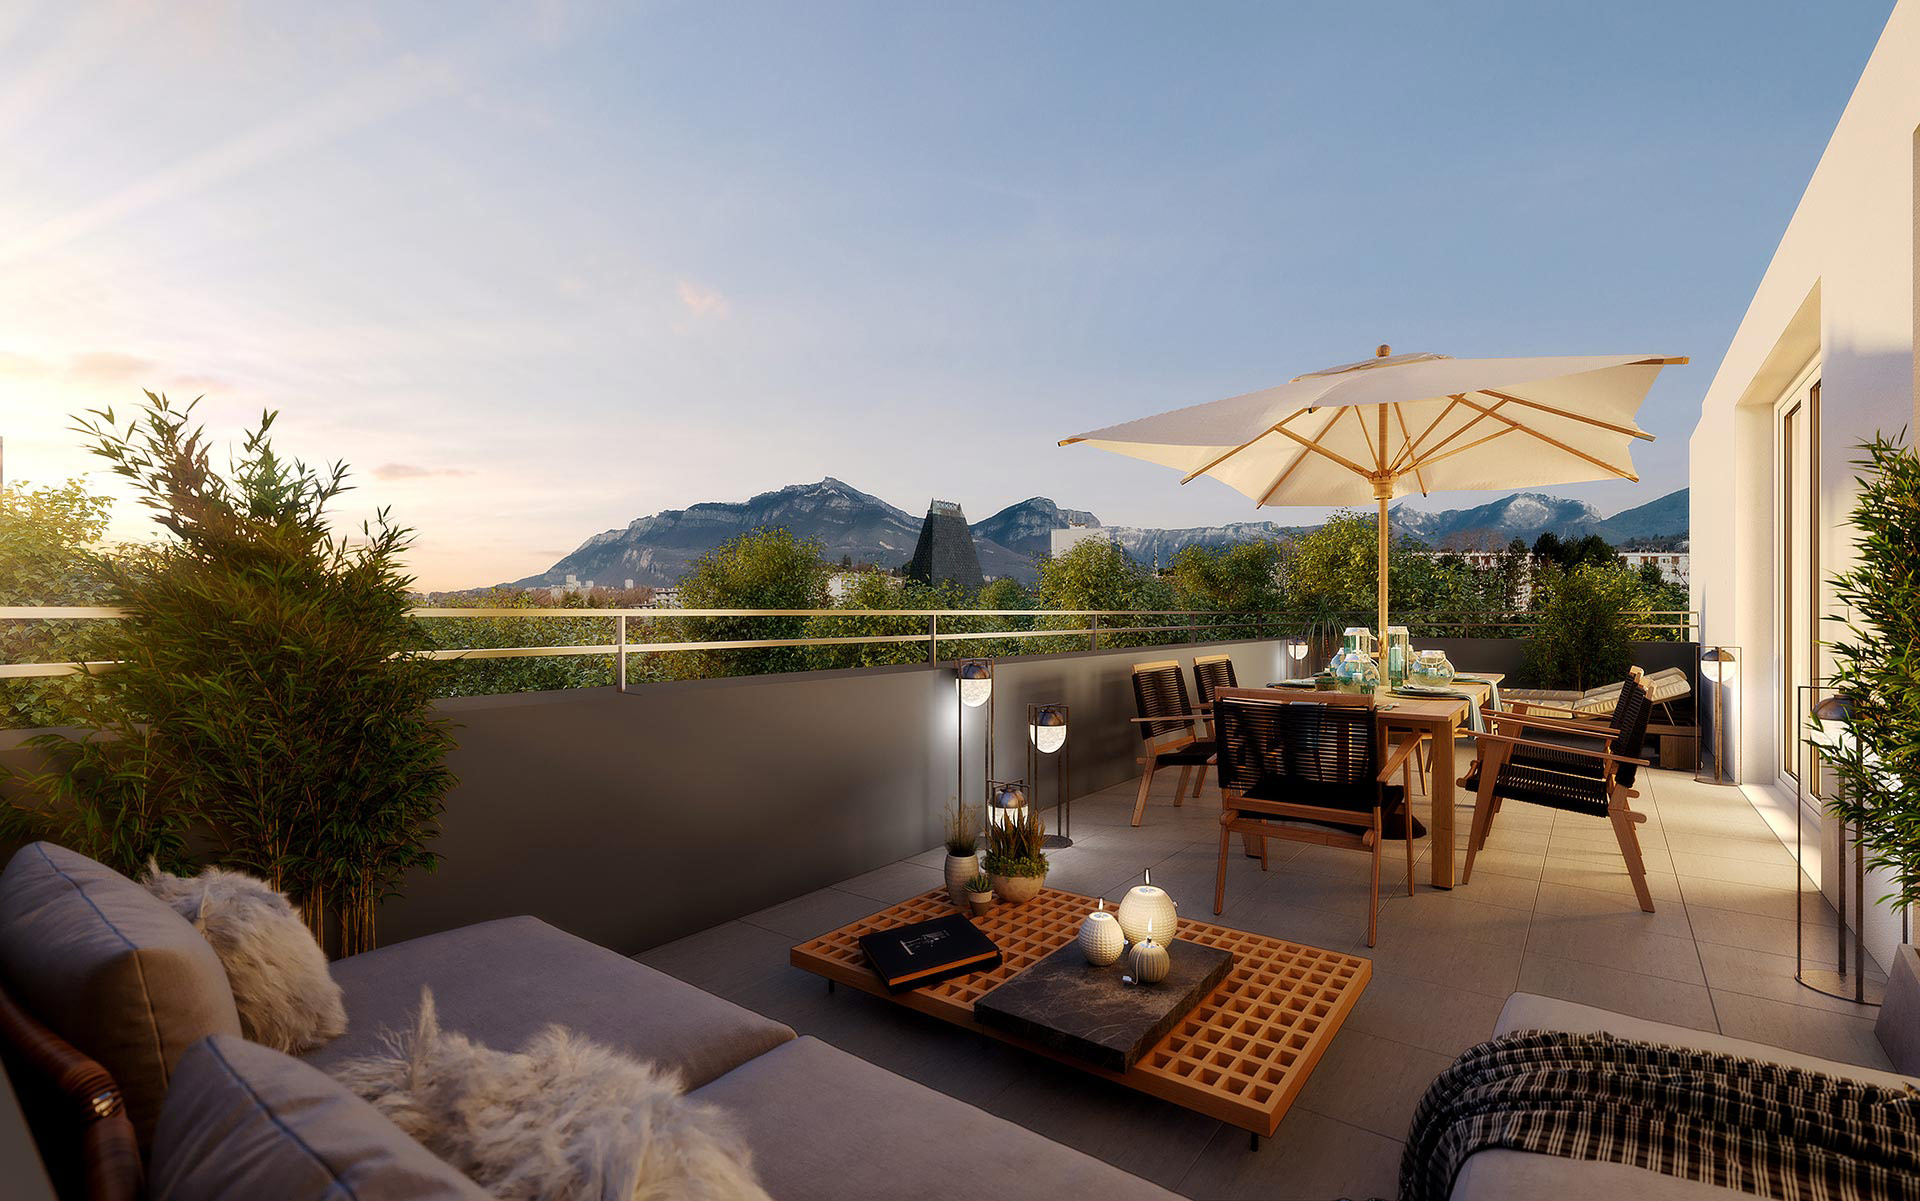 3D terrace visualization in a sunset mood for real estate development - Valentinstudio